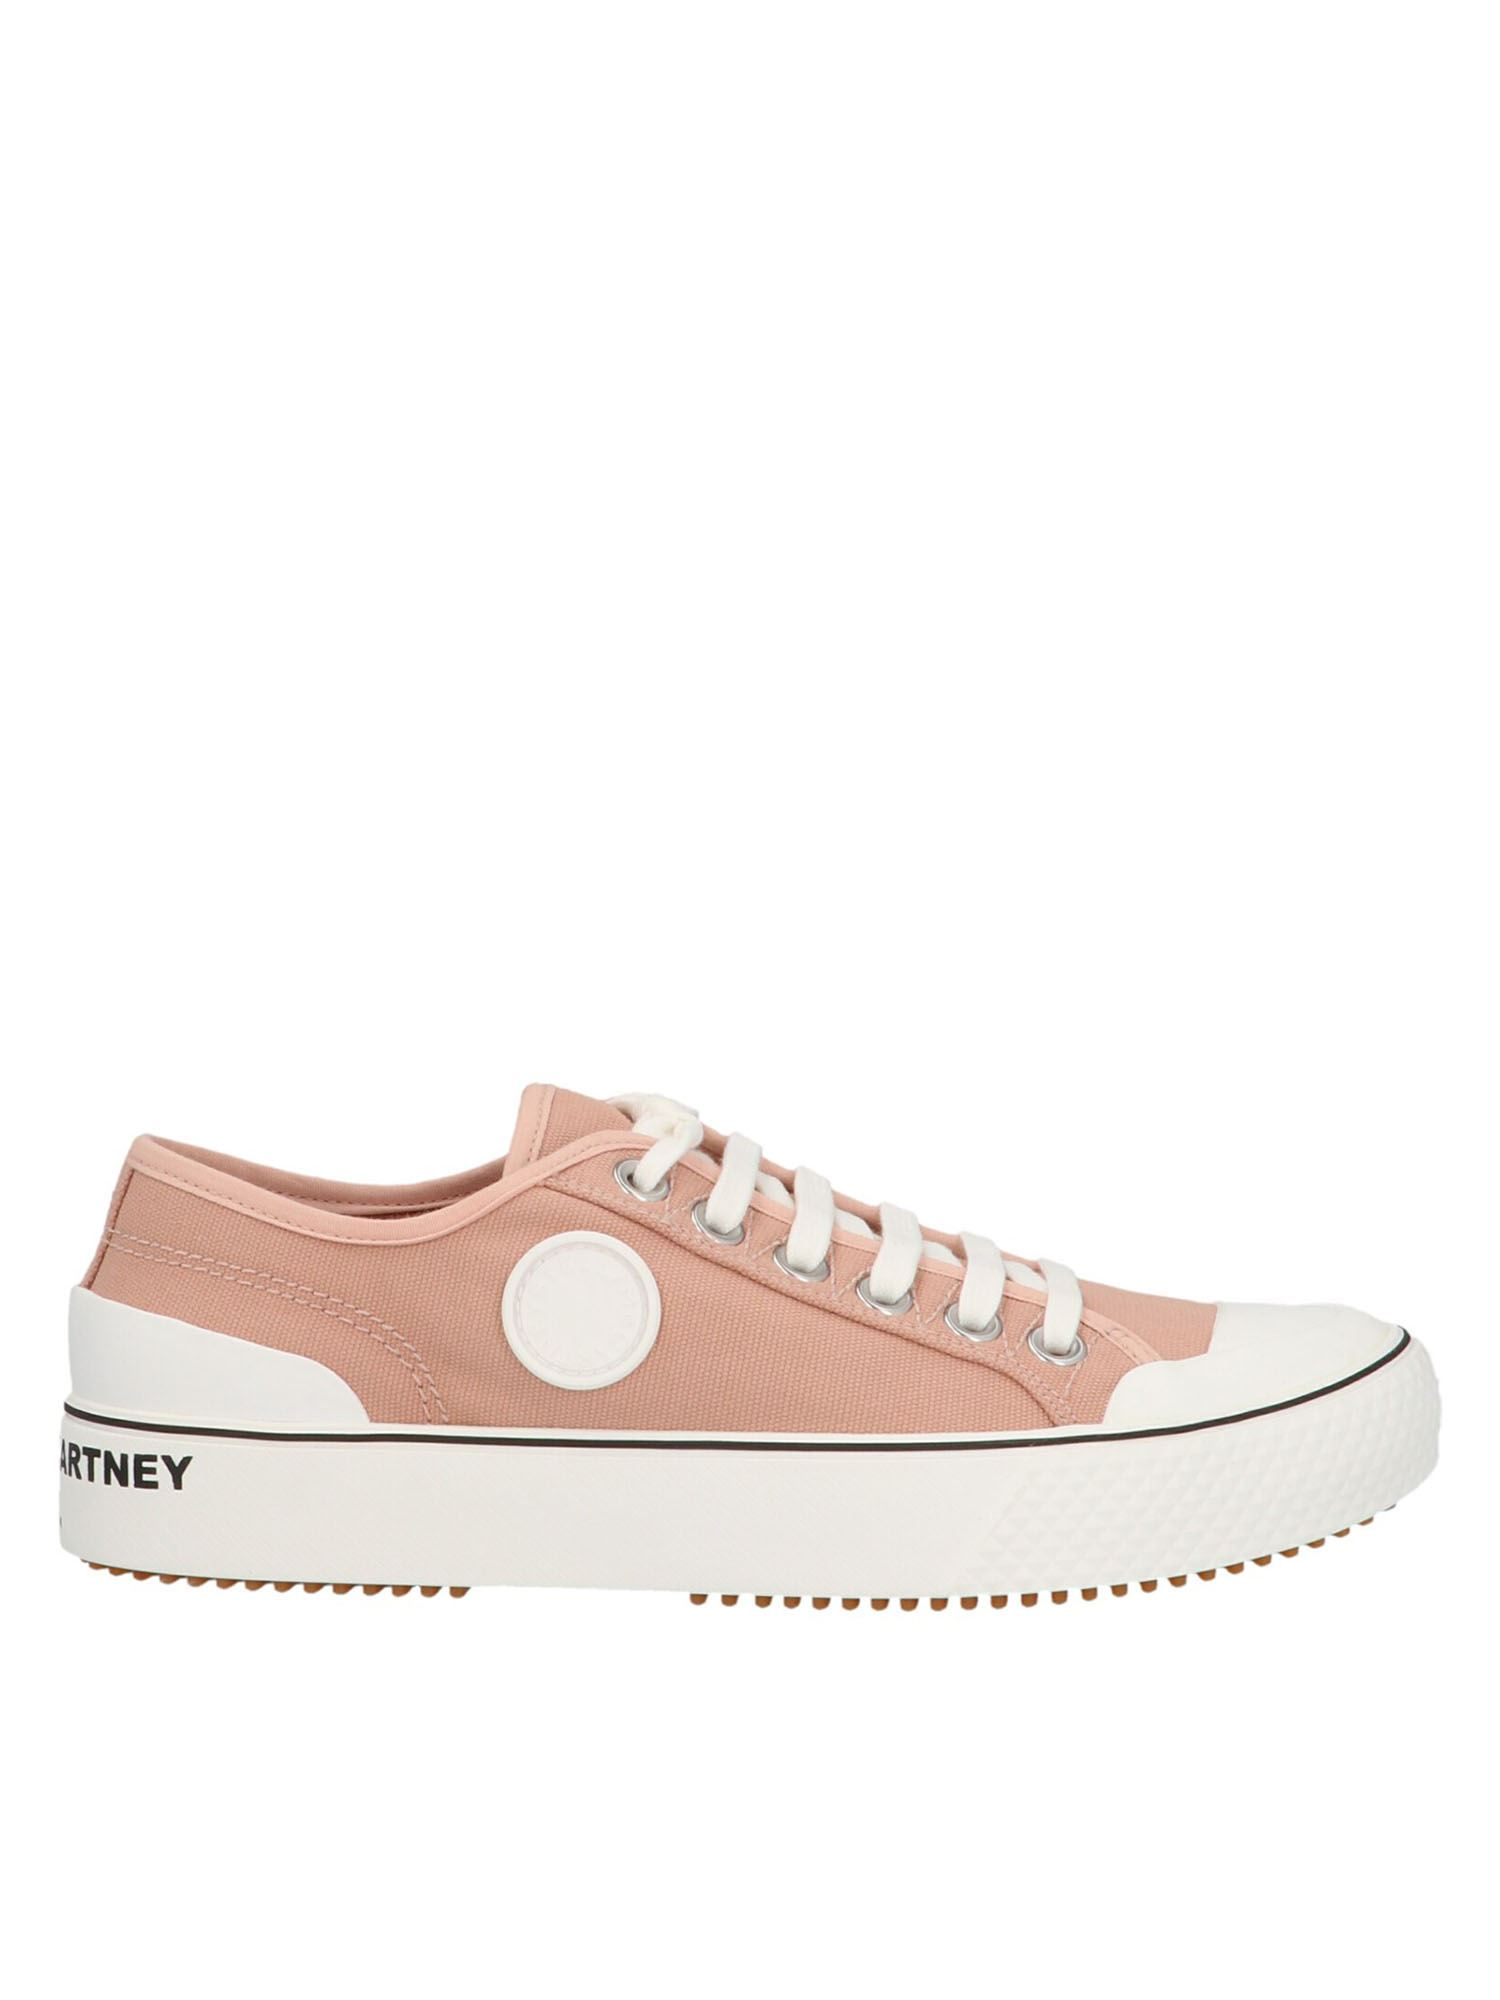 Stella Mccartney STELLA MCCARTNEY LOGO LETTERING SNEAKERS IN PINK